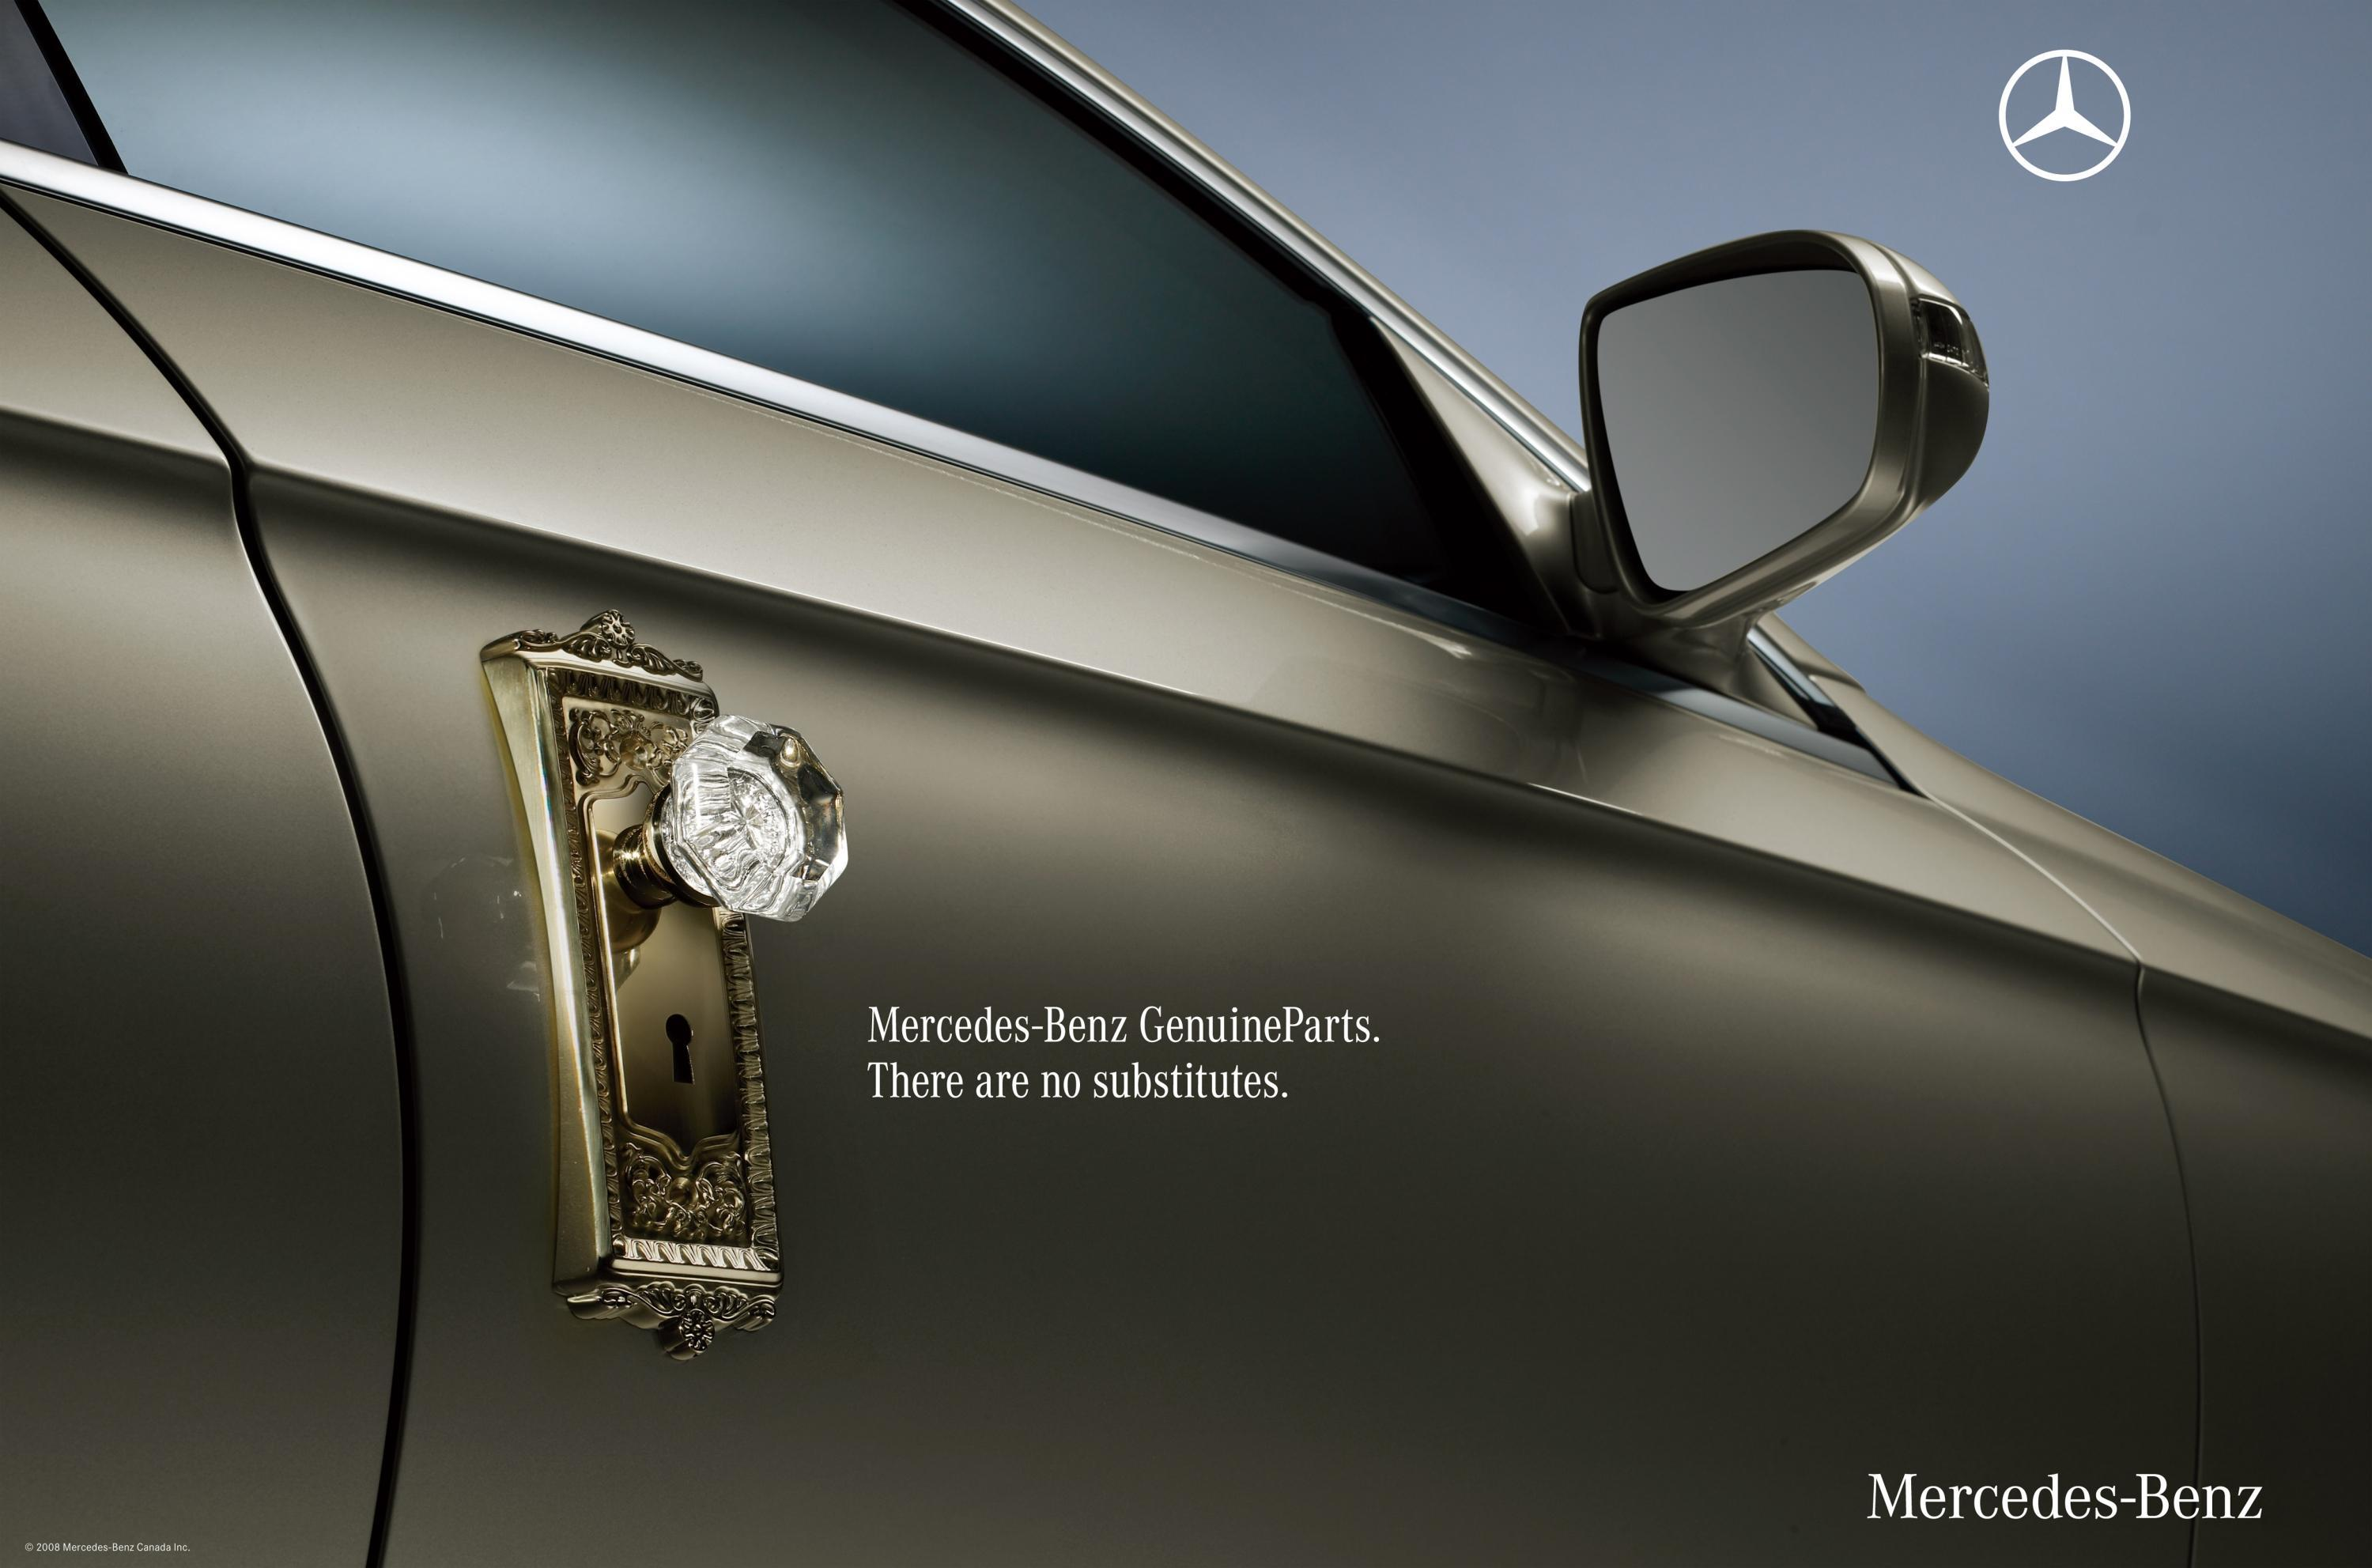 Mercedes-Benz Canada Genuine Parts: Door Handle Bike Wheel Shaving Mirror & Kinnear Door Parts \u0026 Liftmaster ...\